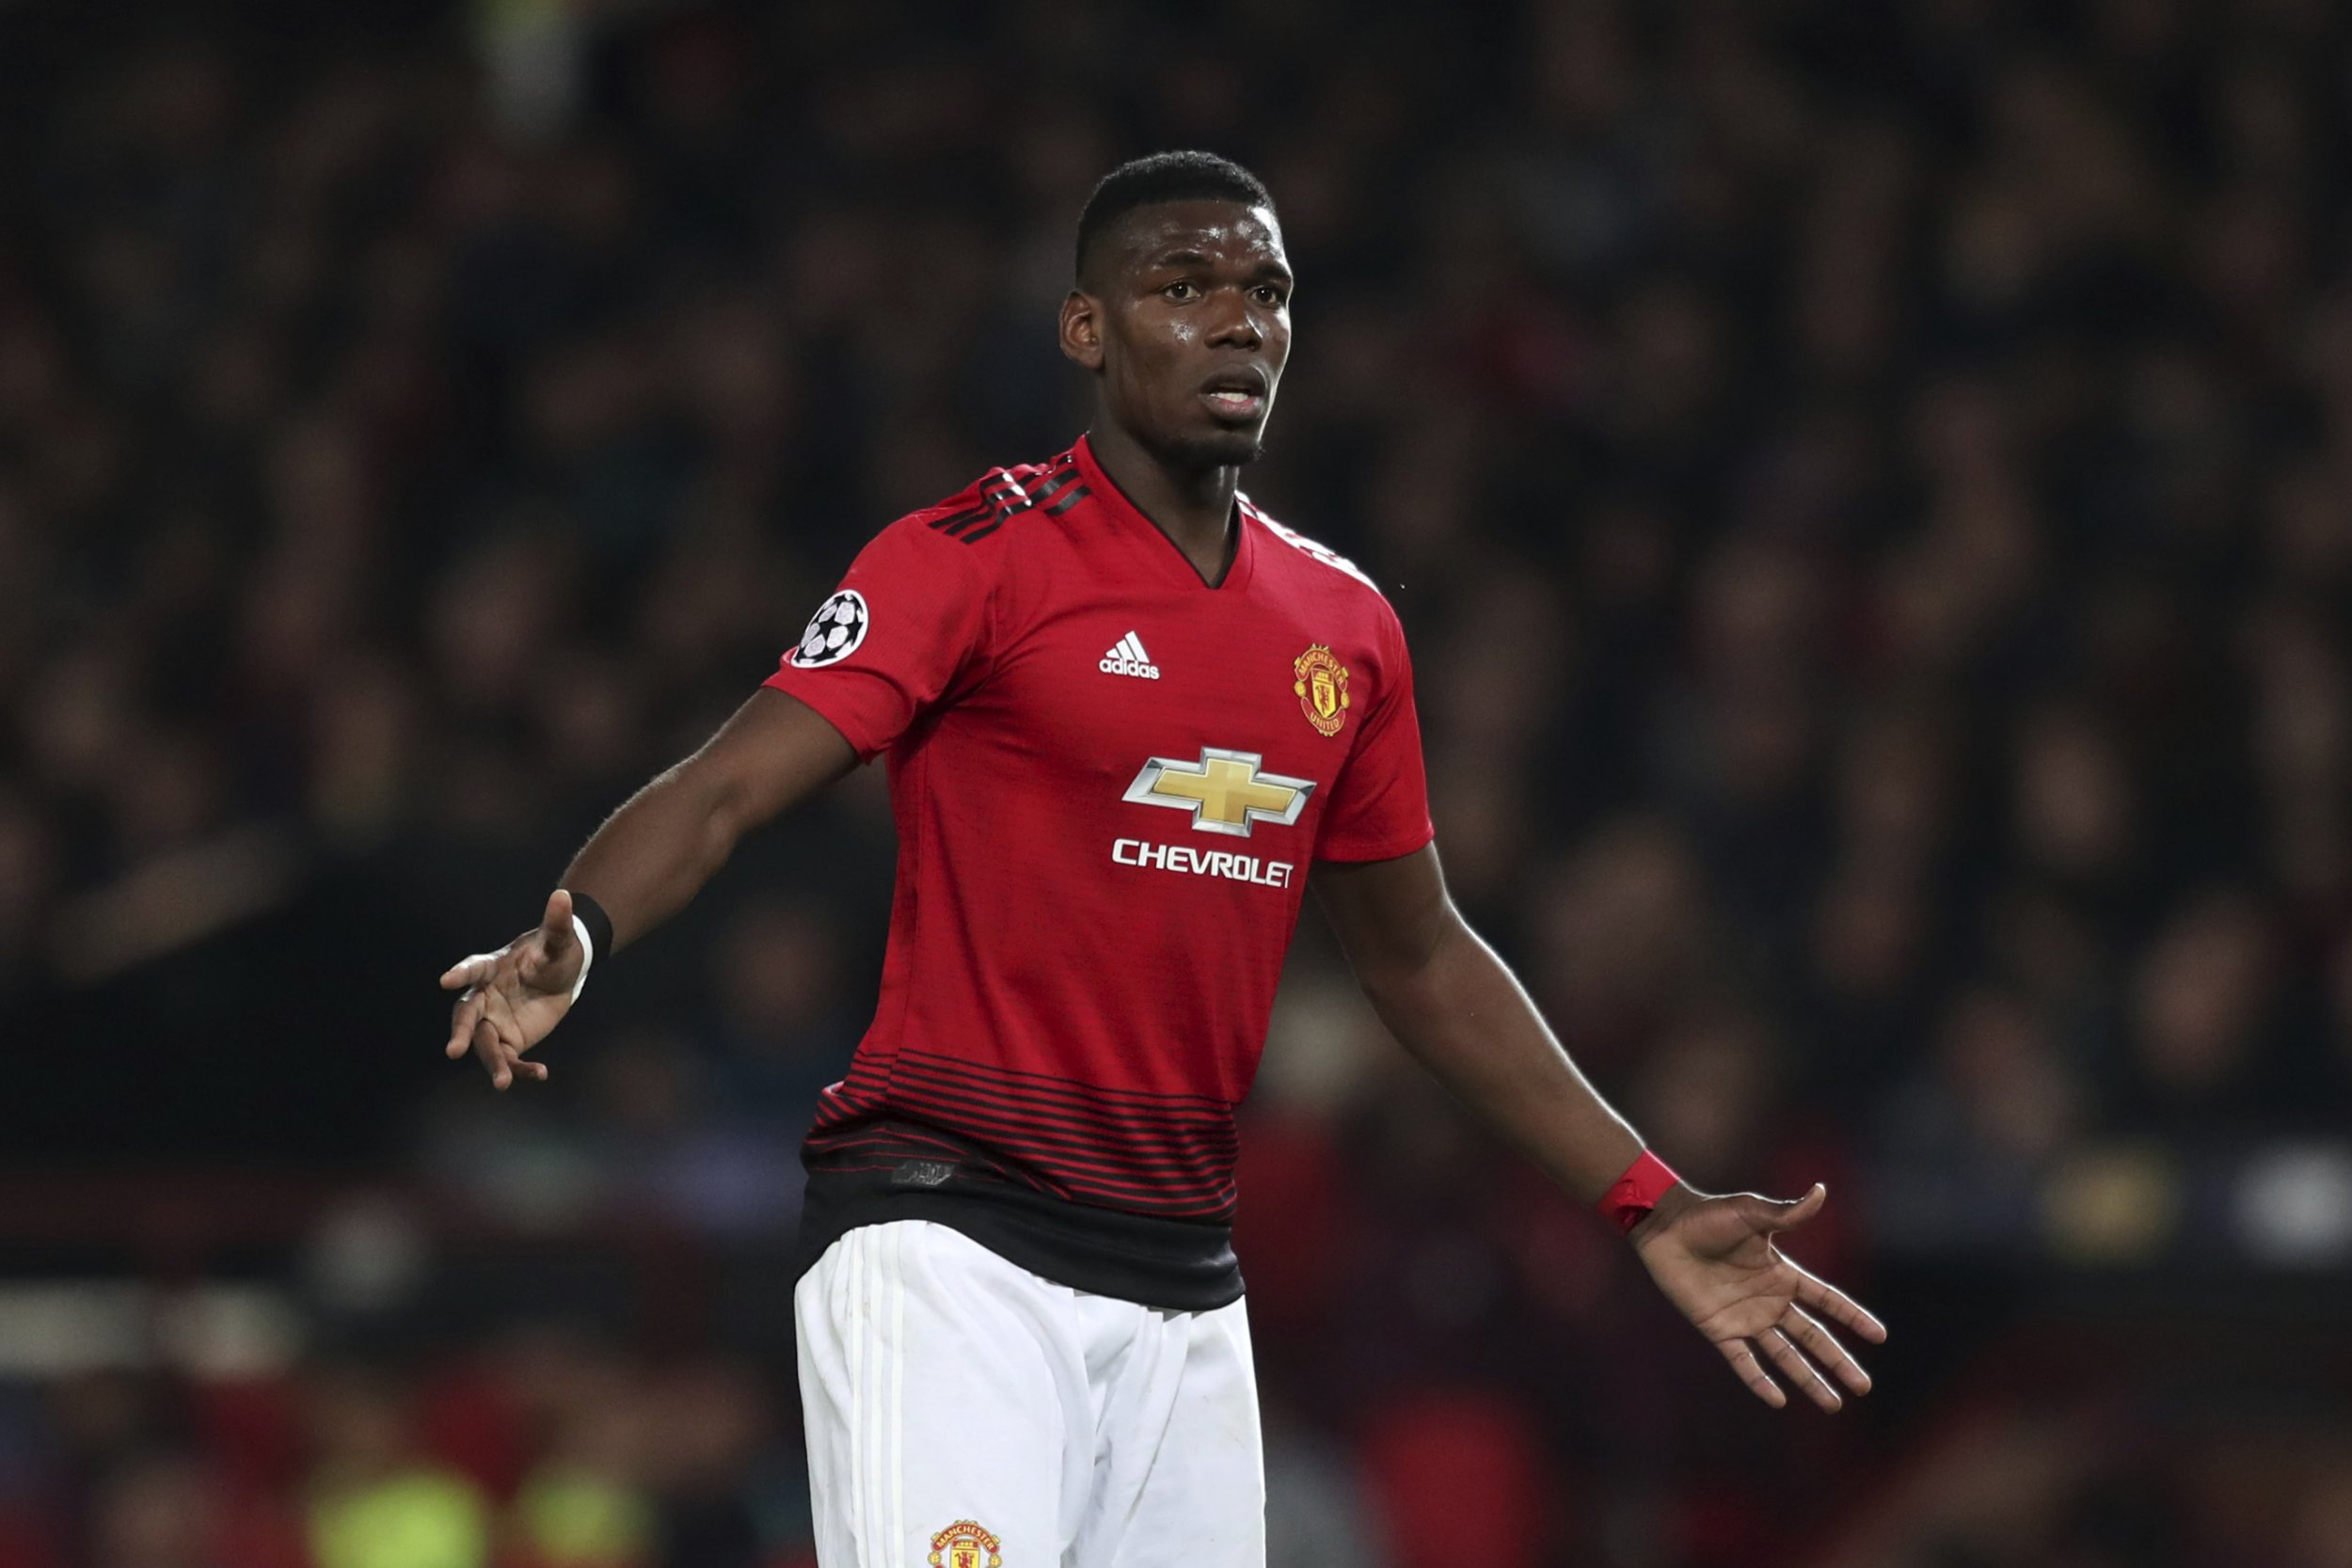 Manchester United's Paul Pogba reacts during the Champions League quarterfinal, first leg, soccer match between Manchester United and FC Barcelona at Old Trafford stadium in Manchester, England, Wednesday, April 10, 2019. (AP Photo/Jon Super)